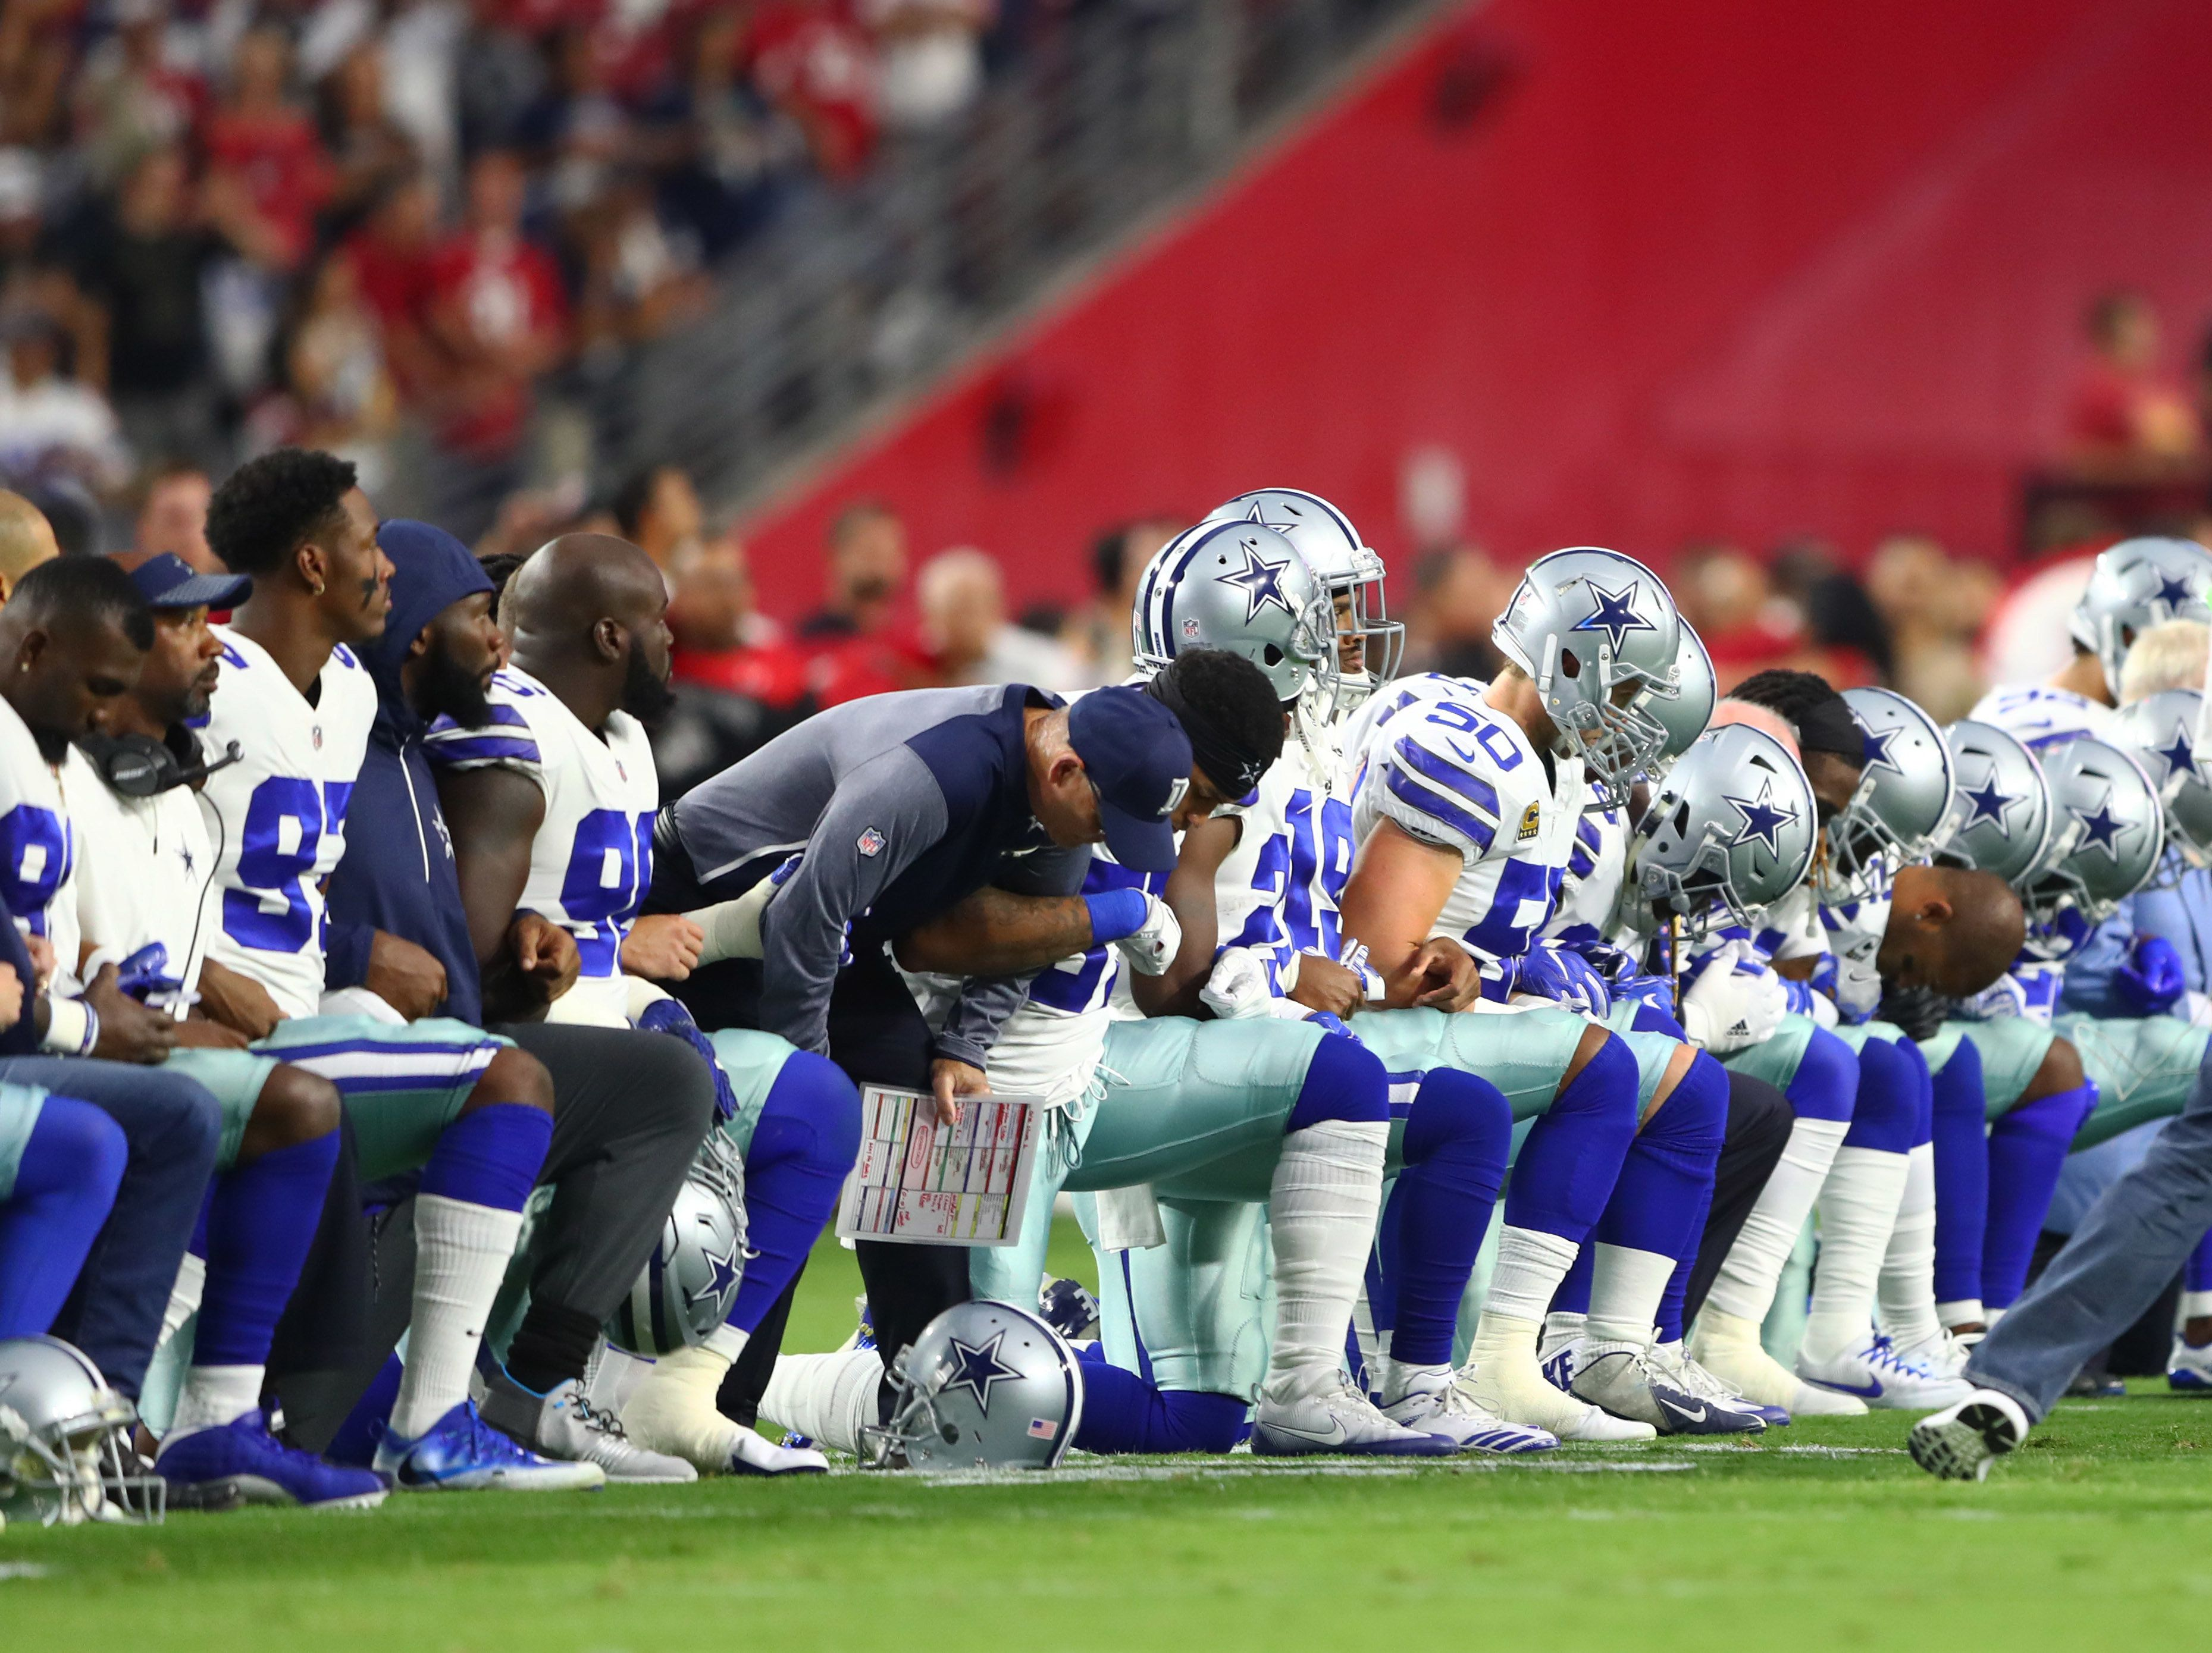 Sep 25, 2017; Glendale, AZ, USA; Dallas Cowboys players kneel together with their arms locked prior to the game against the Arizona Cardinals at University of Phoenix Stadium. Mandatory Credit: Mark J. Rebilas-USA TODAY Sports